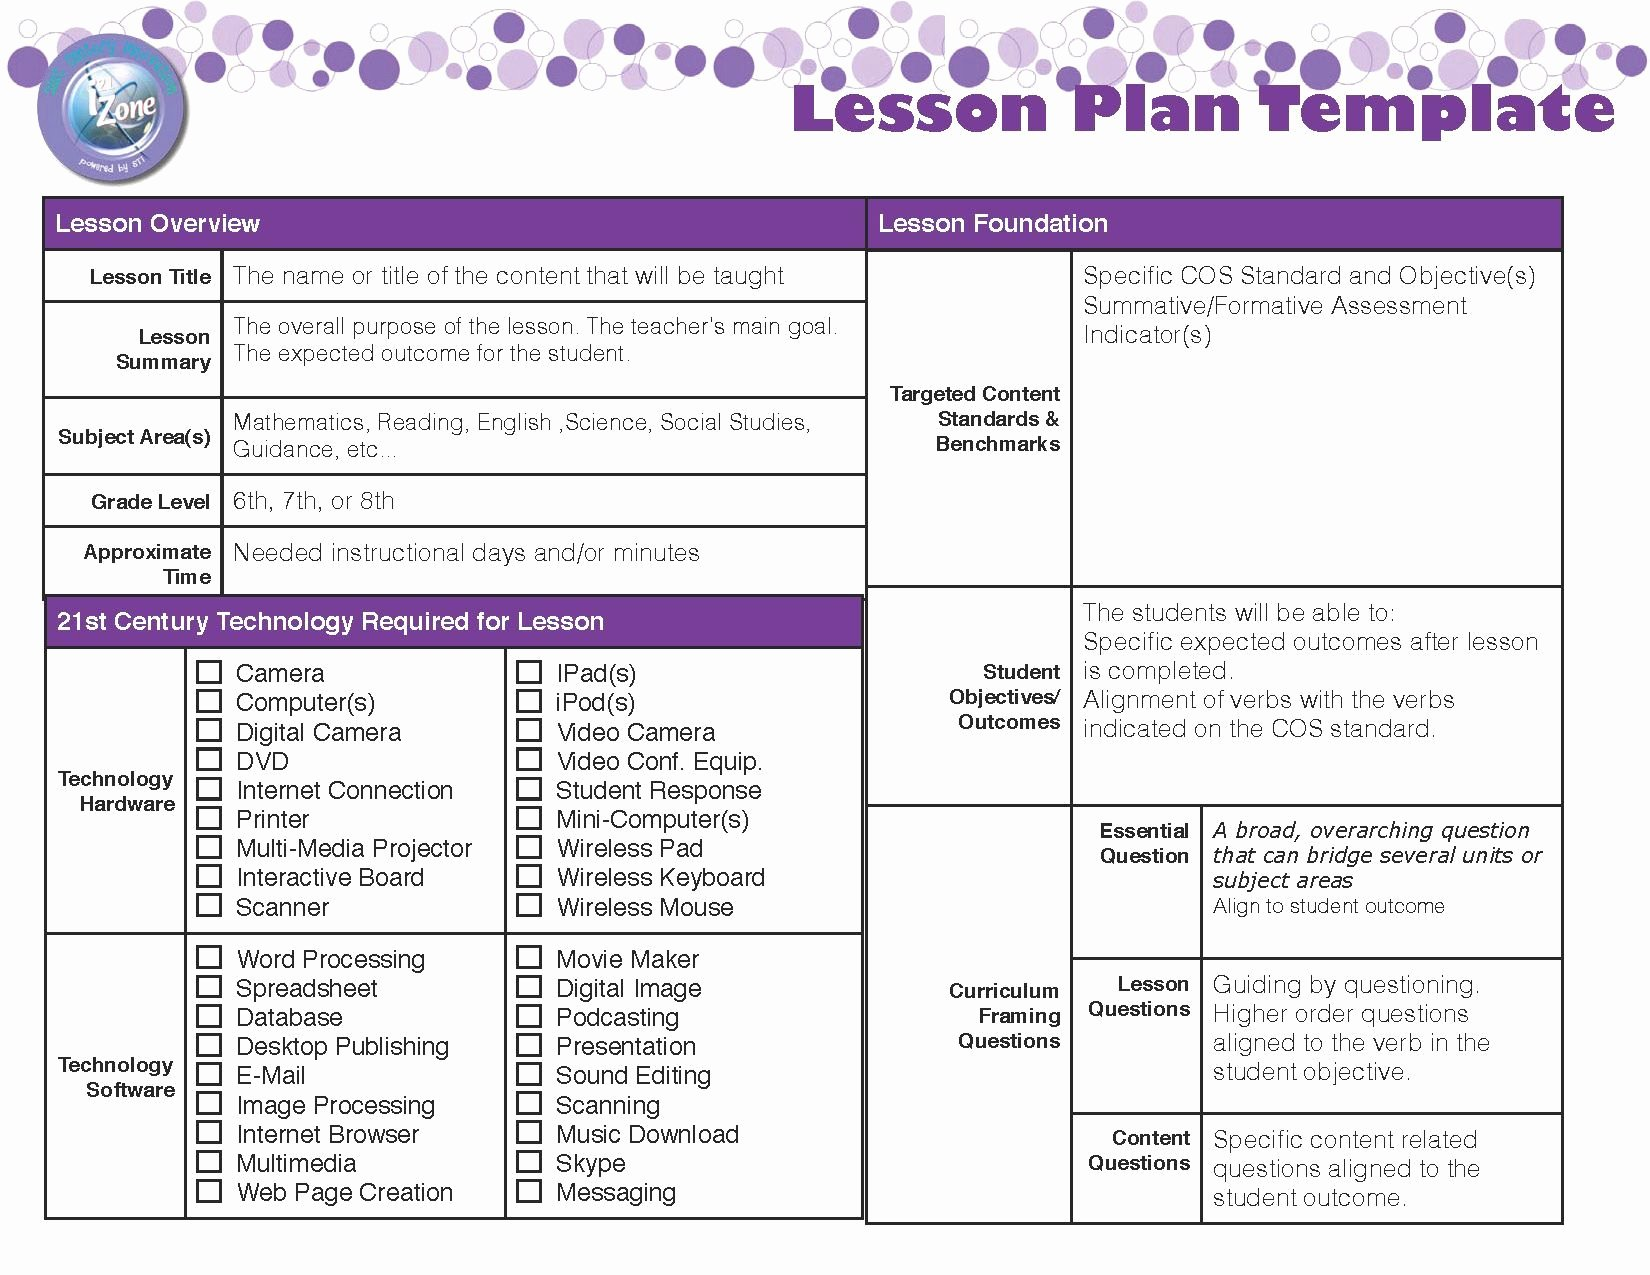 Teaching Strategies Lesson Plan Template Best Of Teaching Strategies Lesson Plan Sample Wagun Rights